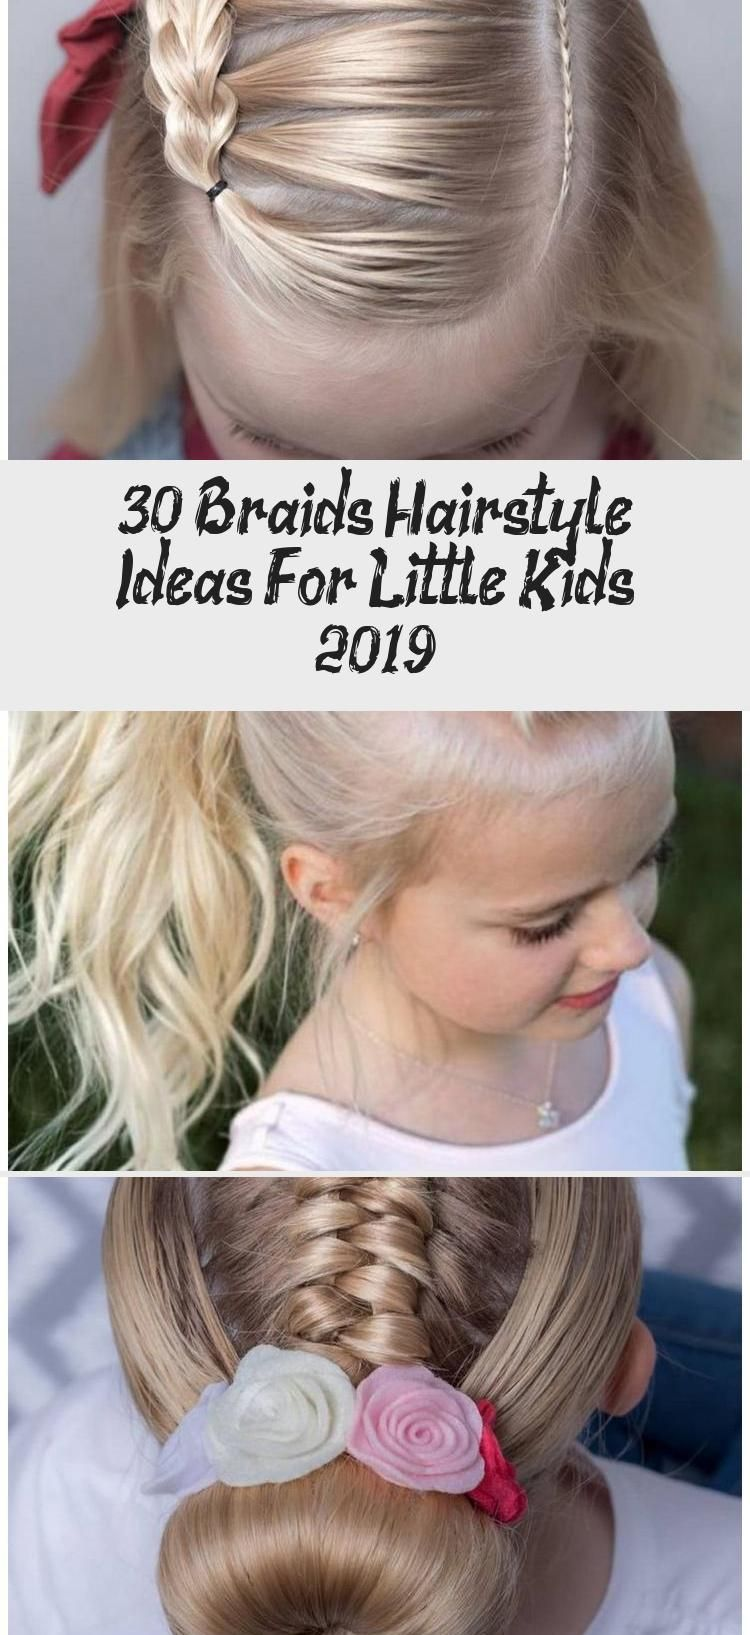 30 Braids Hairstyle Ideas For Little Kids 2019 In 2020 Hair Styles Braided Hairstyles Natural Hair Salons